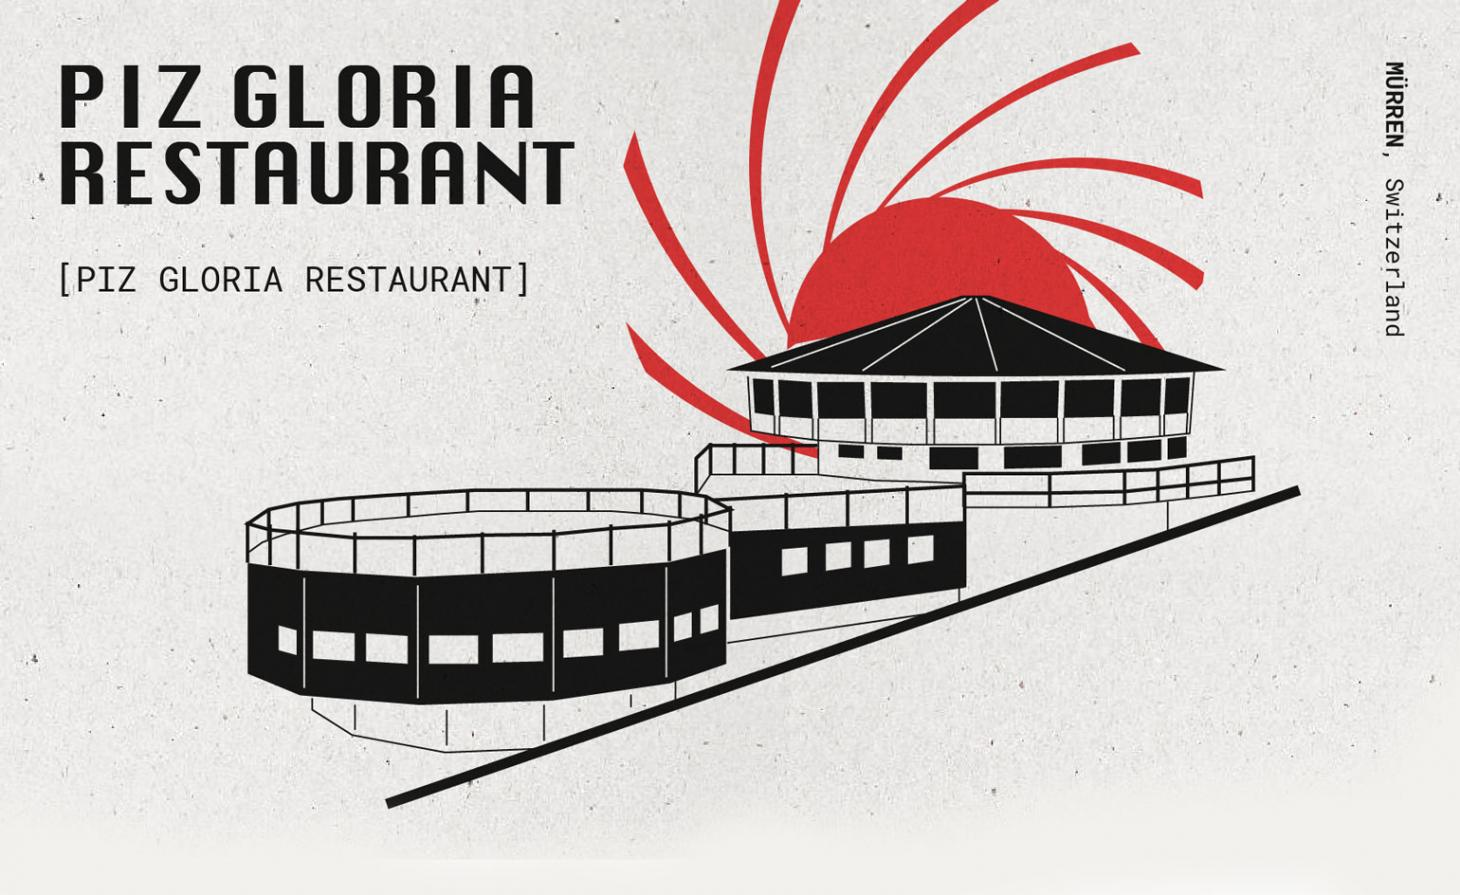 black and red drawing of Piz gloria restaurant from the on her majesty's secret service Bond movie